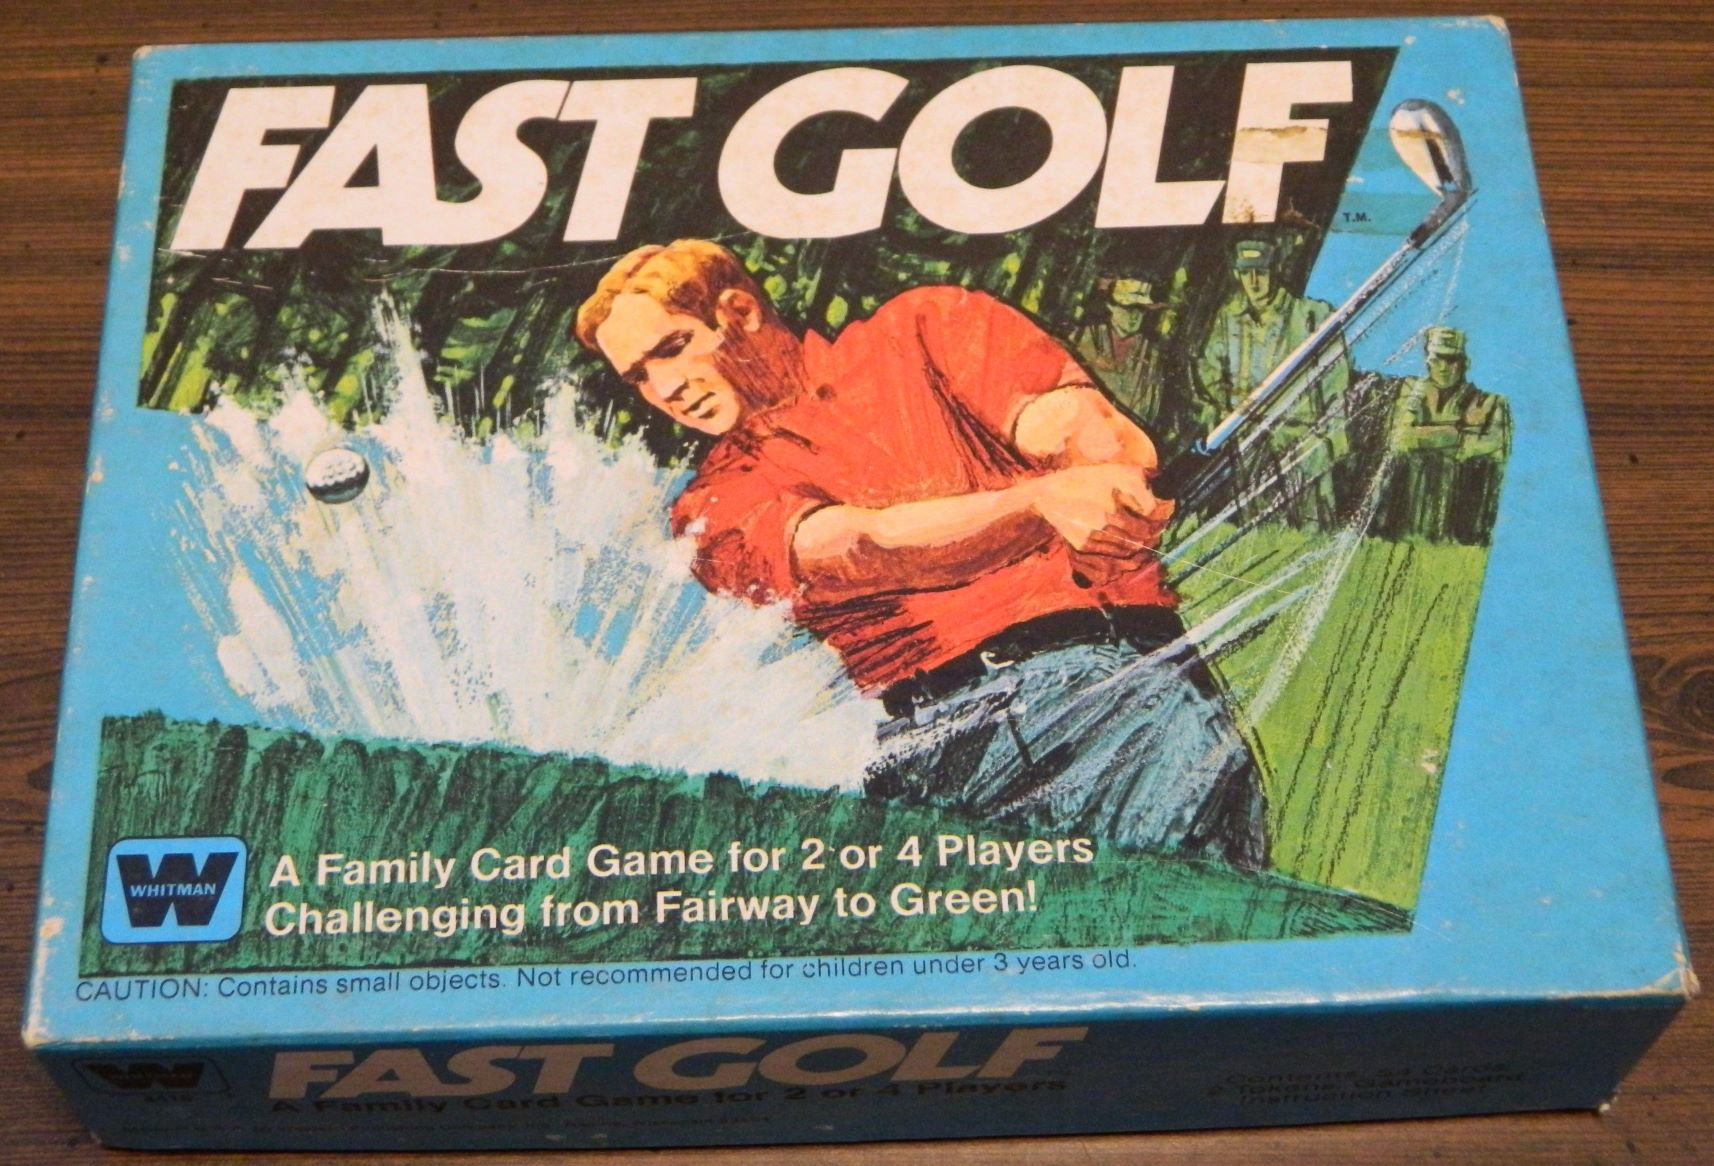 Box for Fast Golf